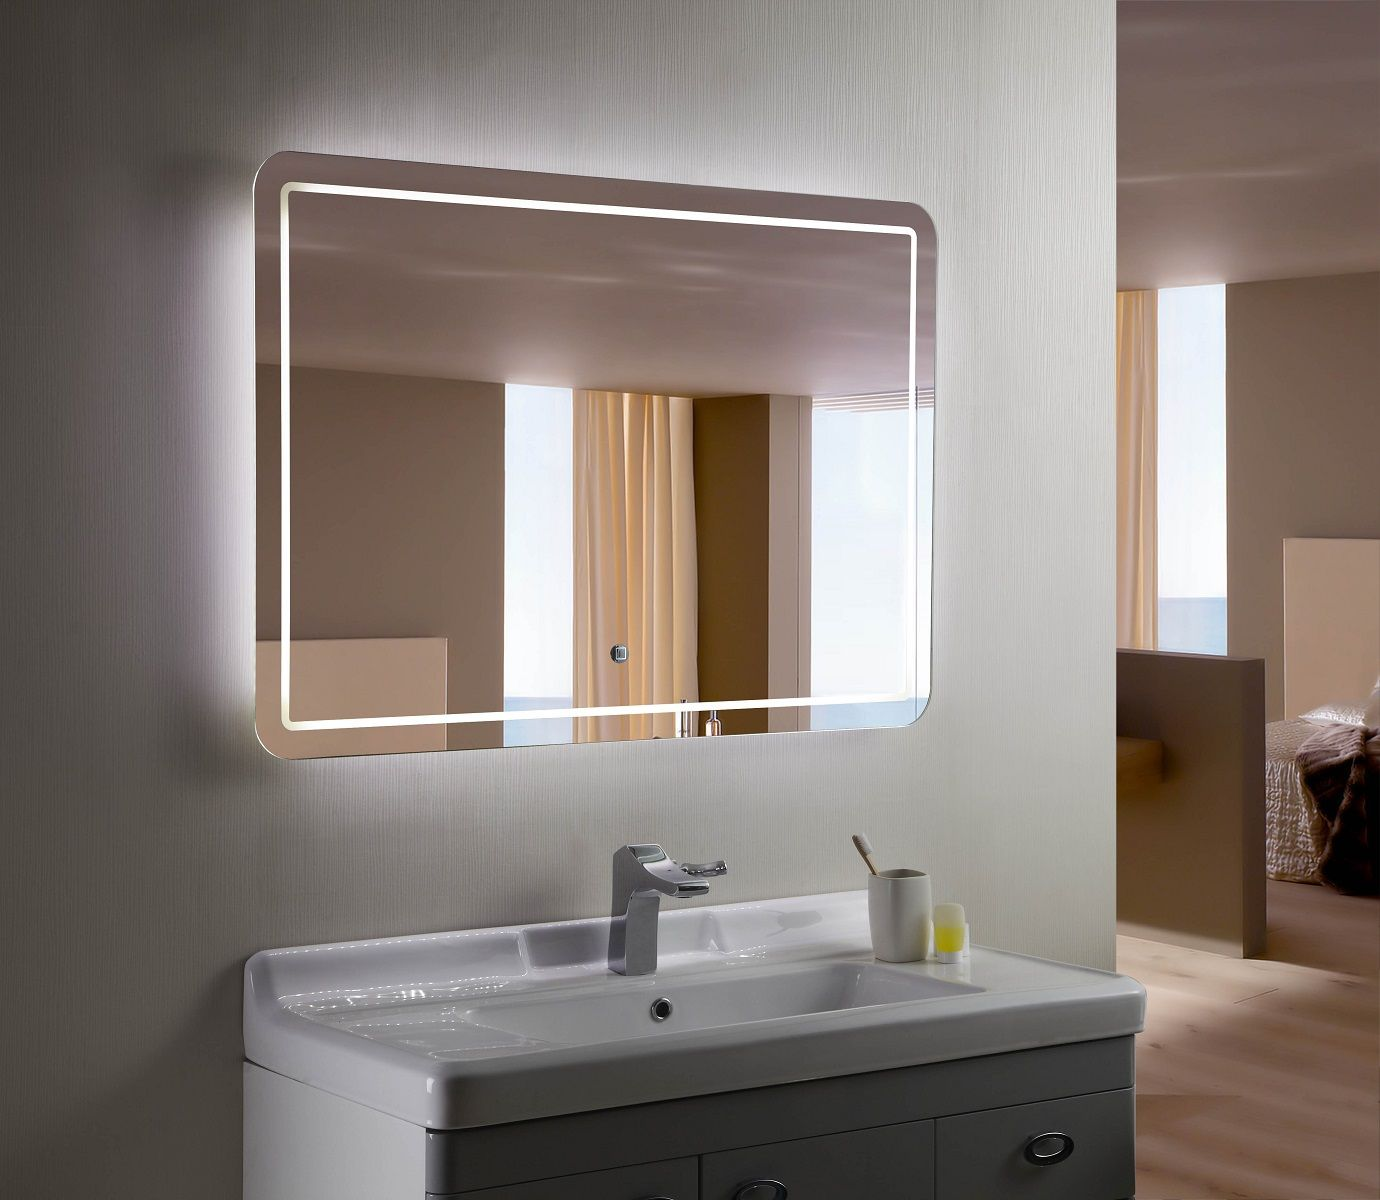 Bathroom Mirrors With Lights Built In bellagio ii backlit mirror led bathroom mirror | condo upgrades